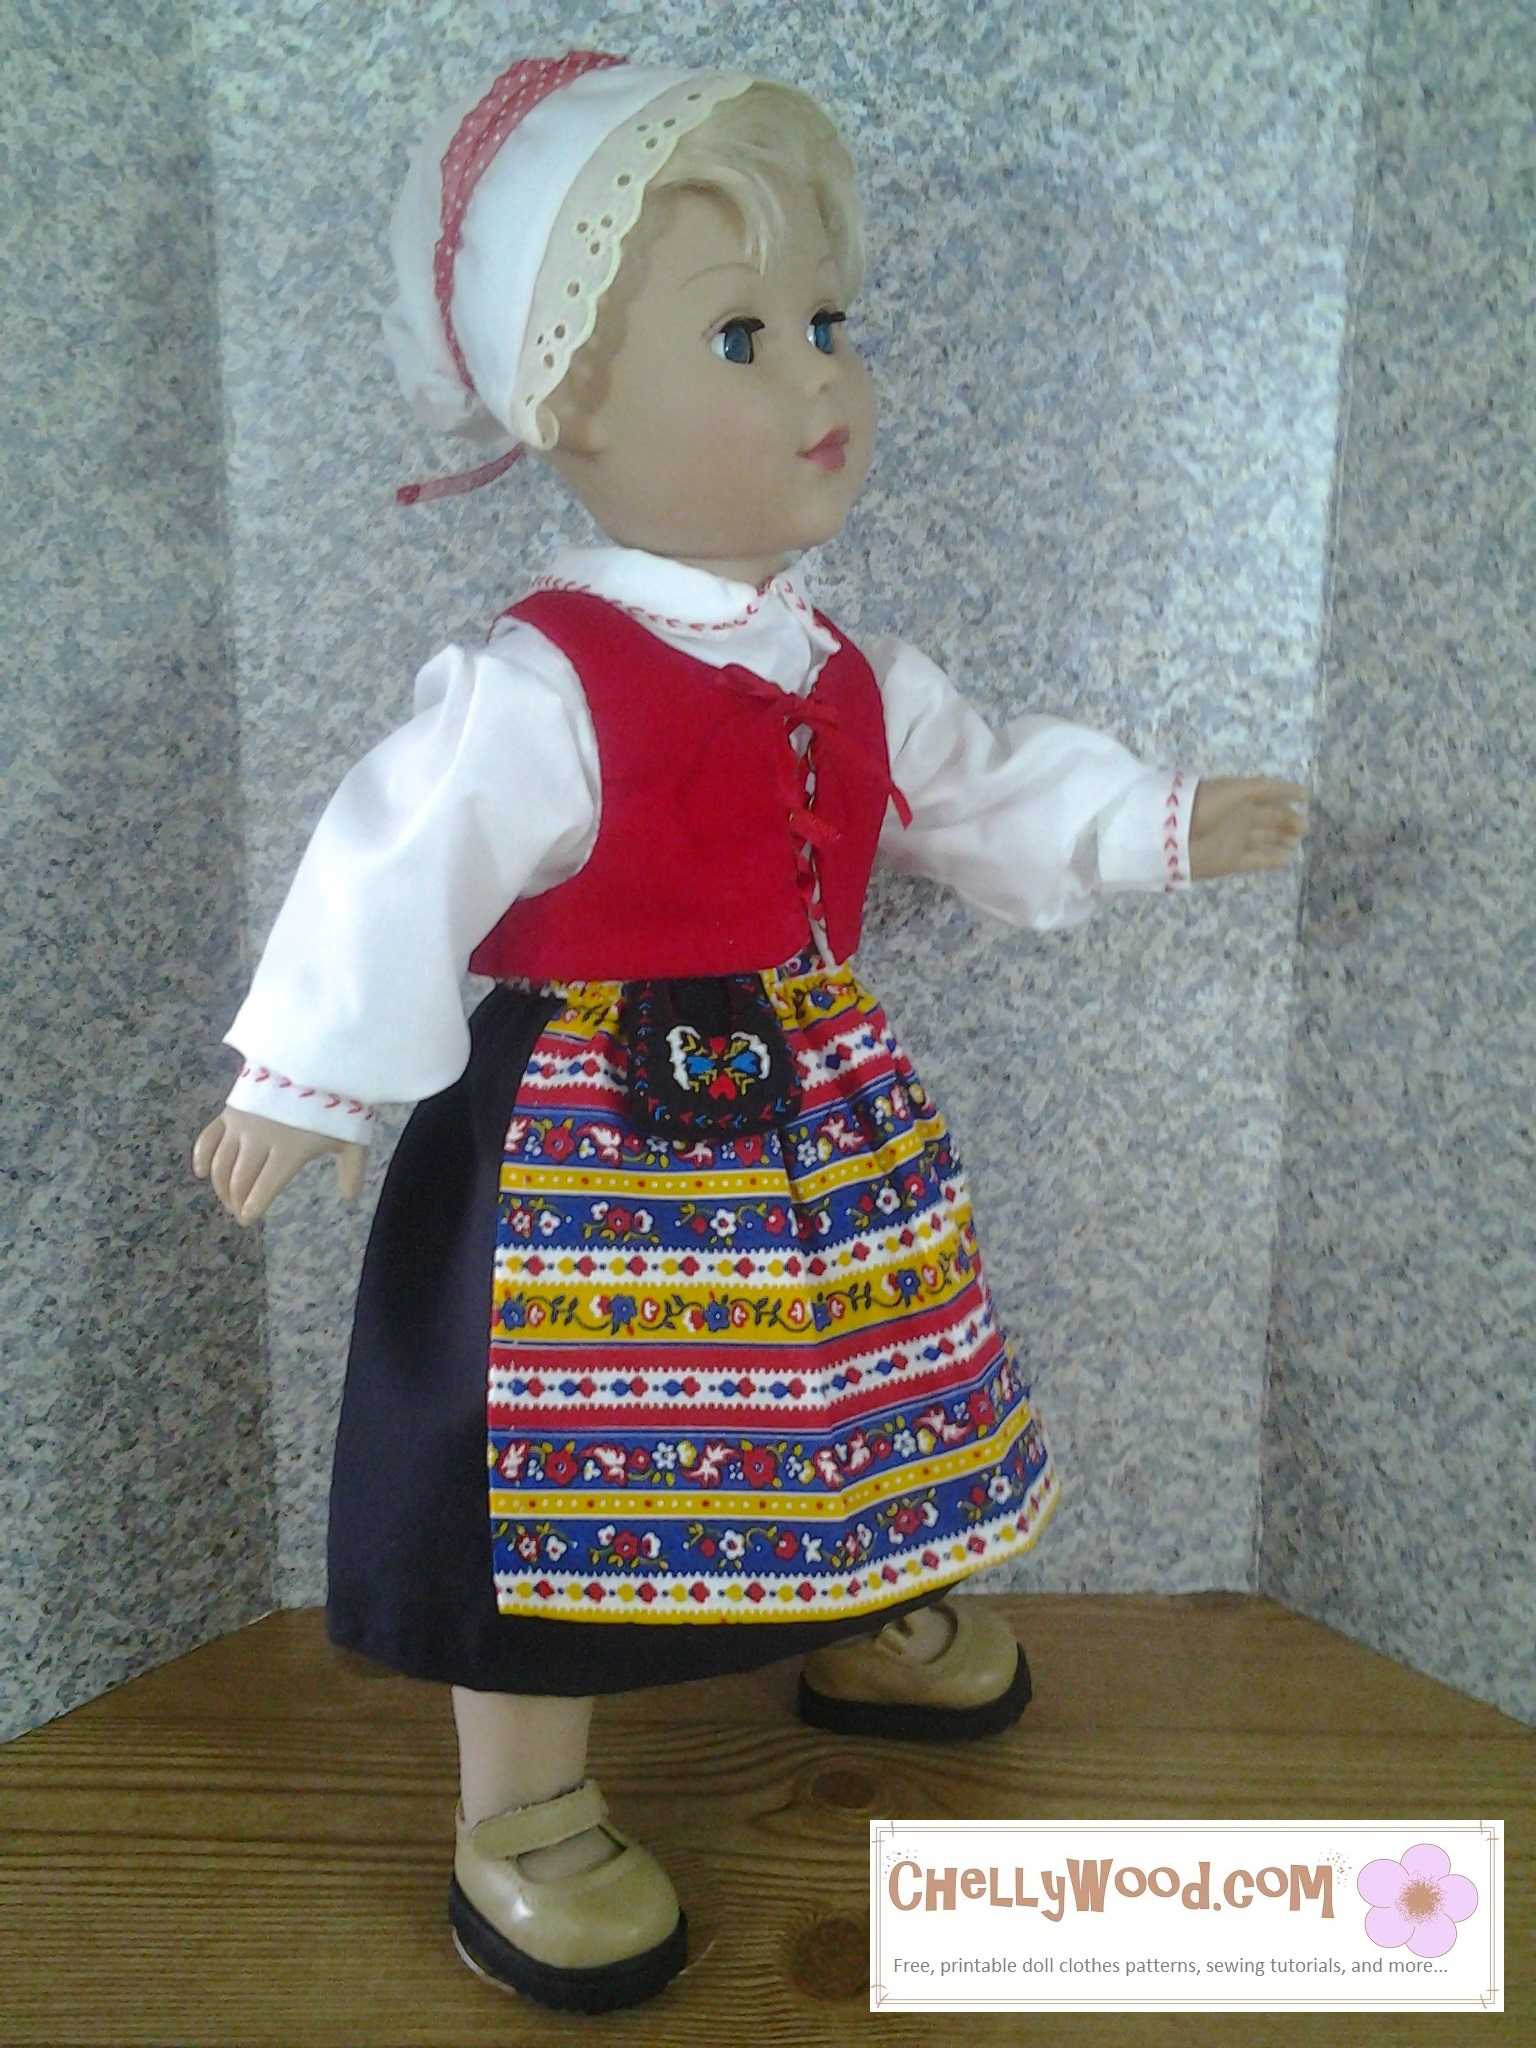 """In this photograph, a Madame Alexander 18 inch doll models a traditional Swedish costume. This costume includes a little bonnet, a shirt with a collar and cuffs, a lace-up vest, a black skirt, and a folk apron. There's also a traditional Swedish """"pocket purse"""" made of embroidered felt attached to the waistband of the apron. Although it's not pictured here, the costume also includes a neckerchief."""